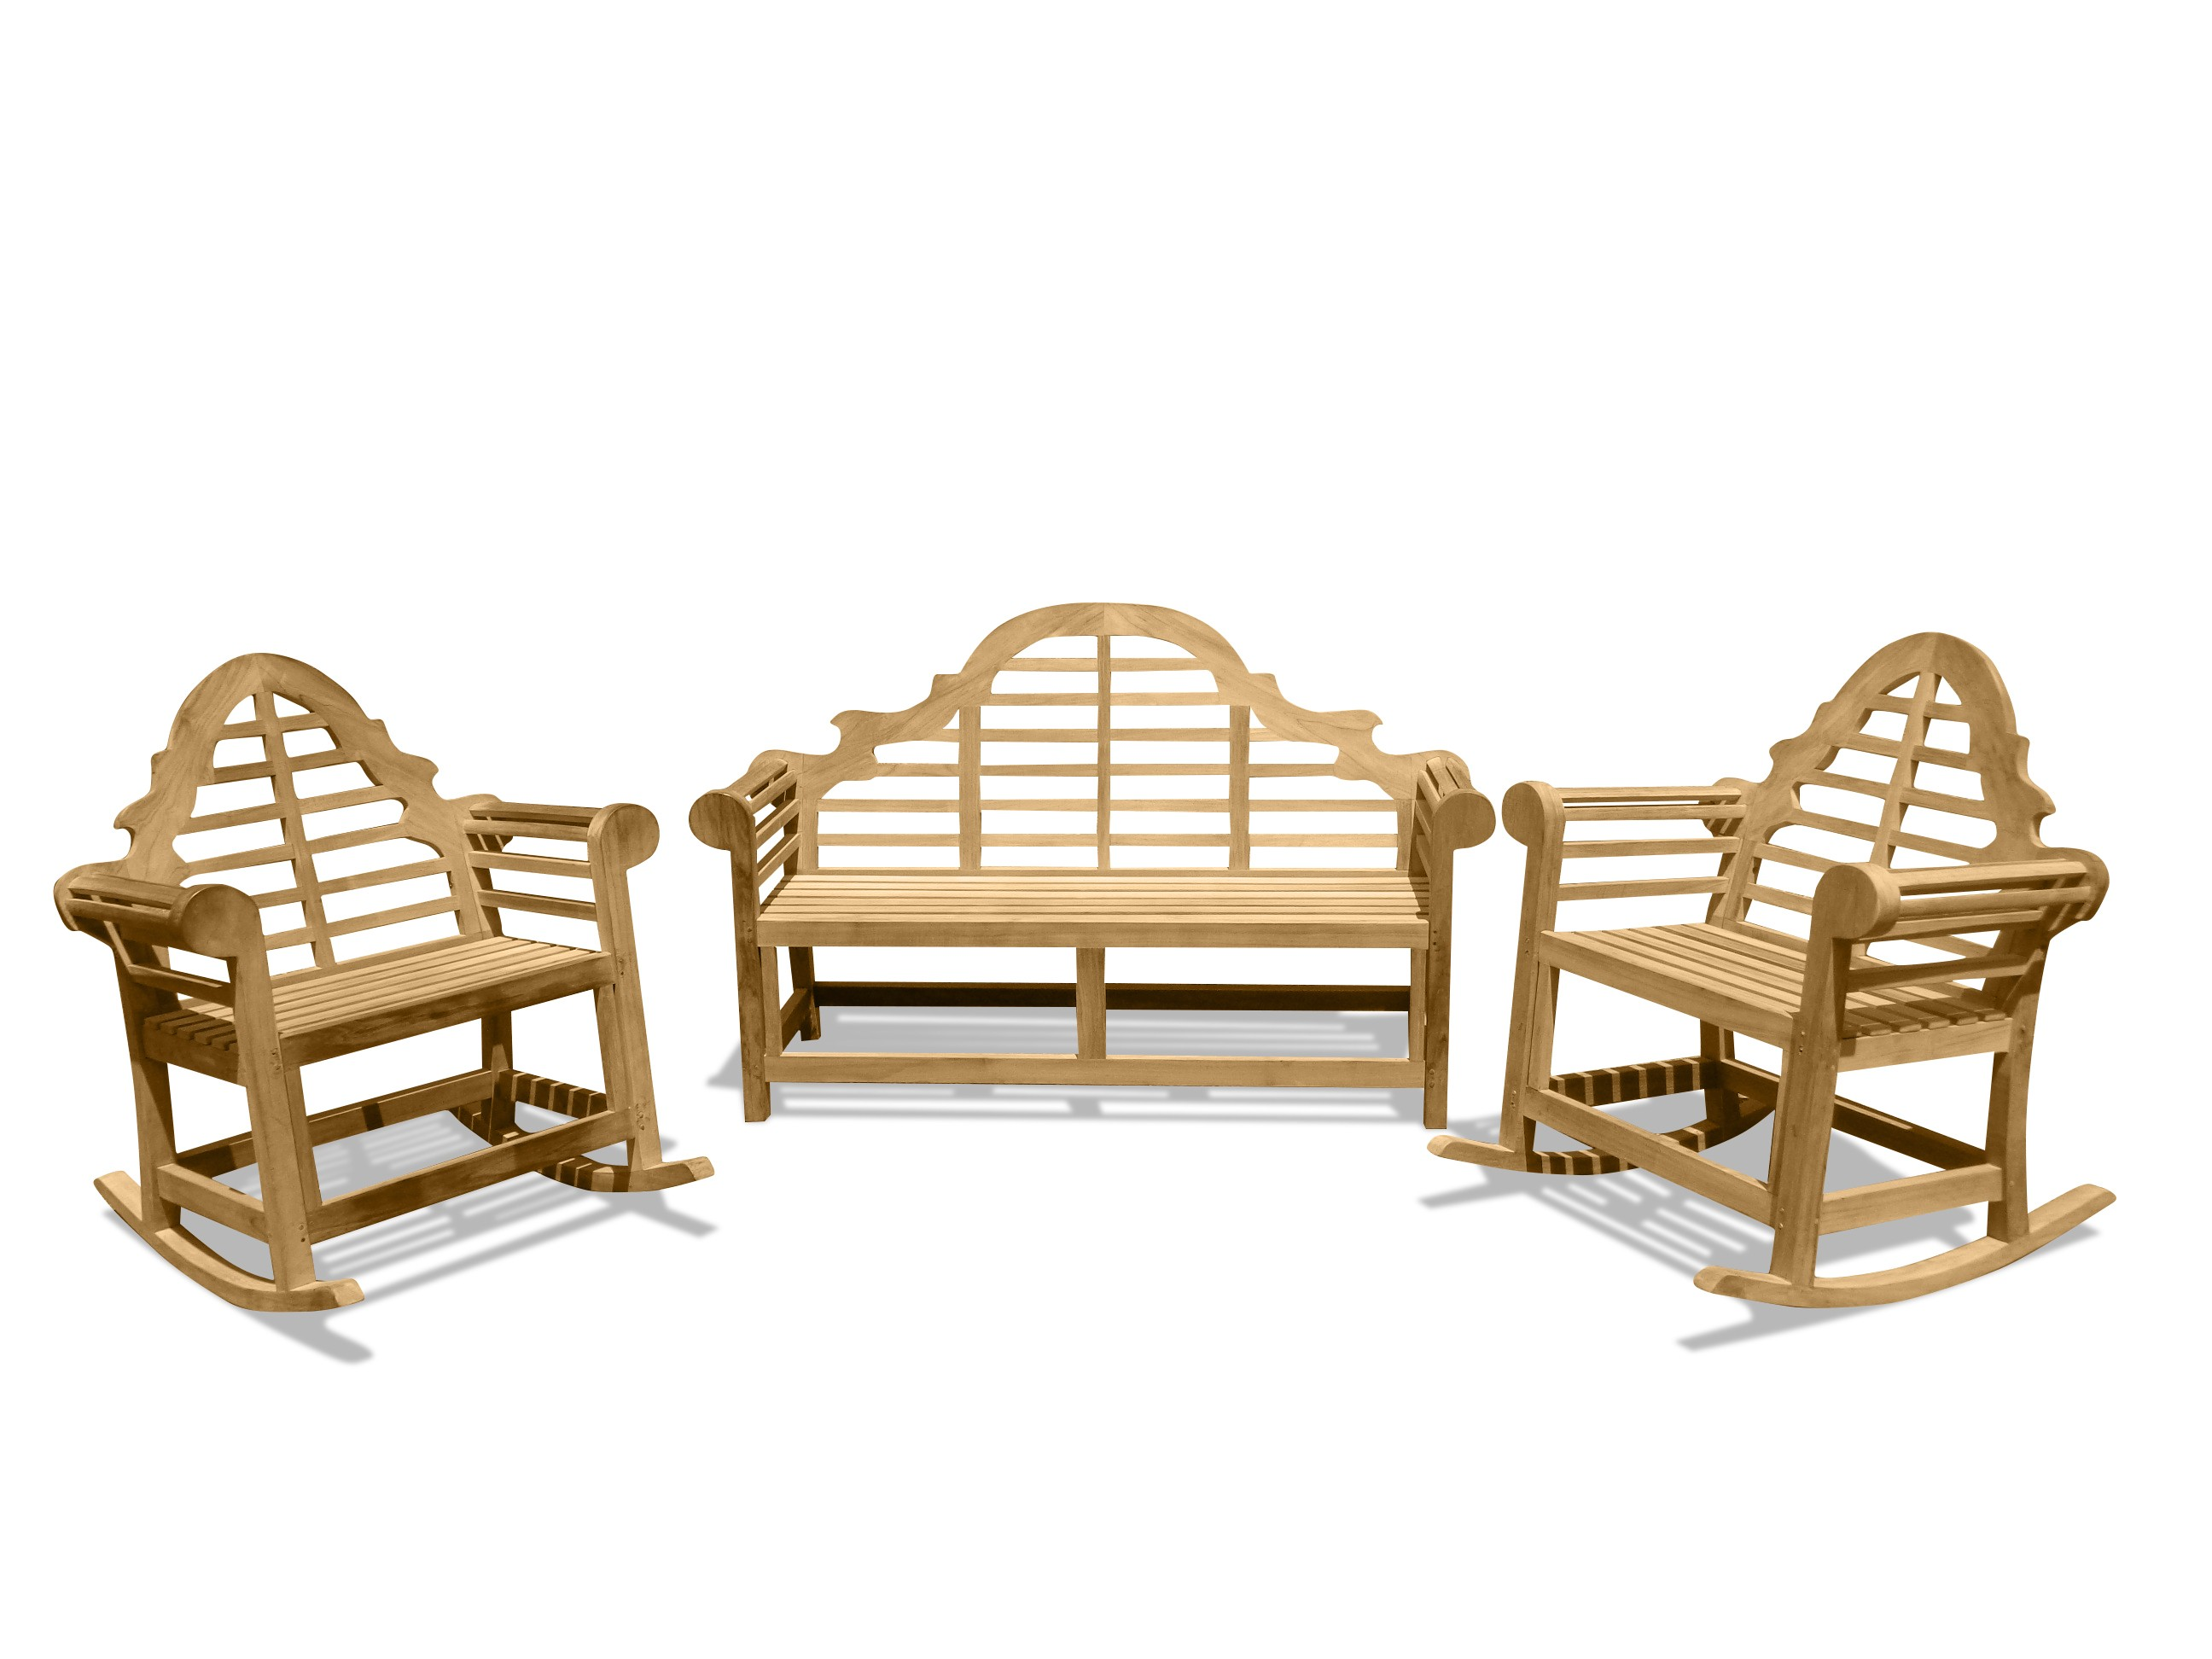 Lutyens 3-Seater Bench & 2 Single Rockers